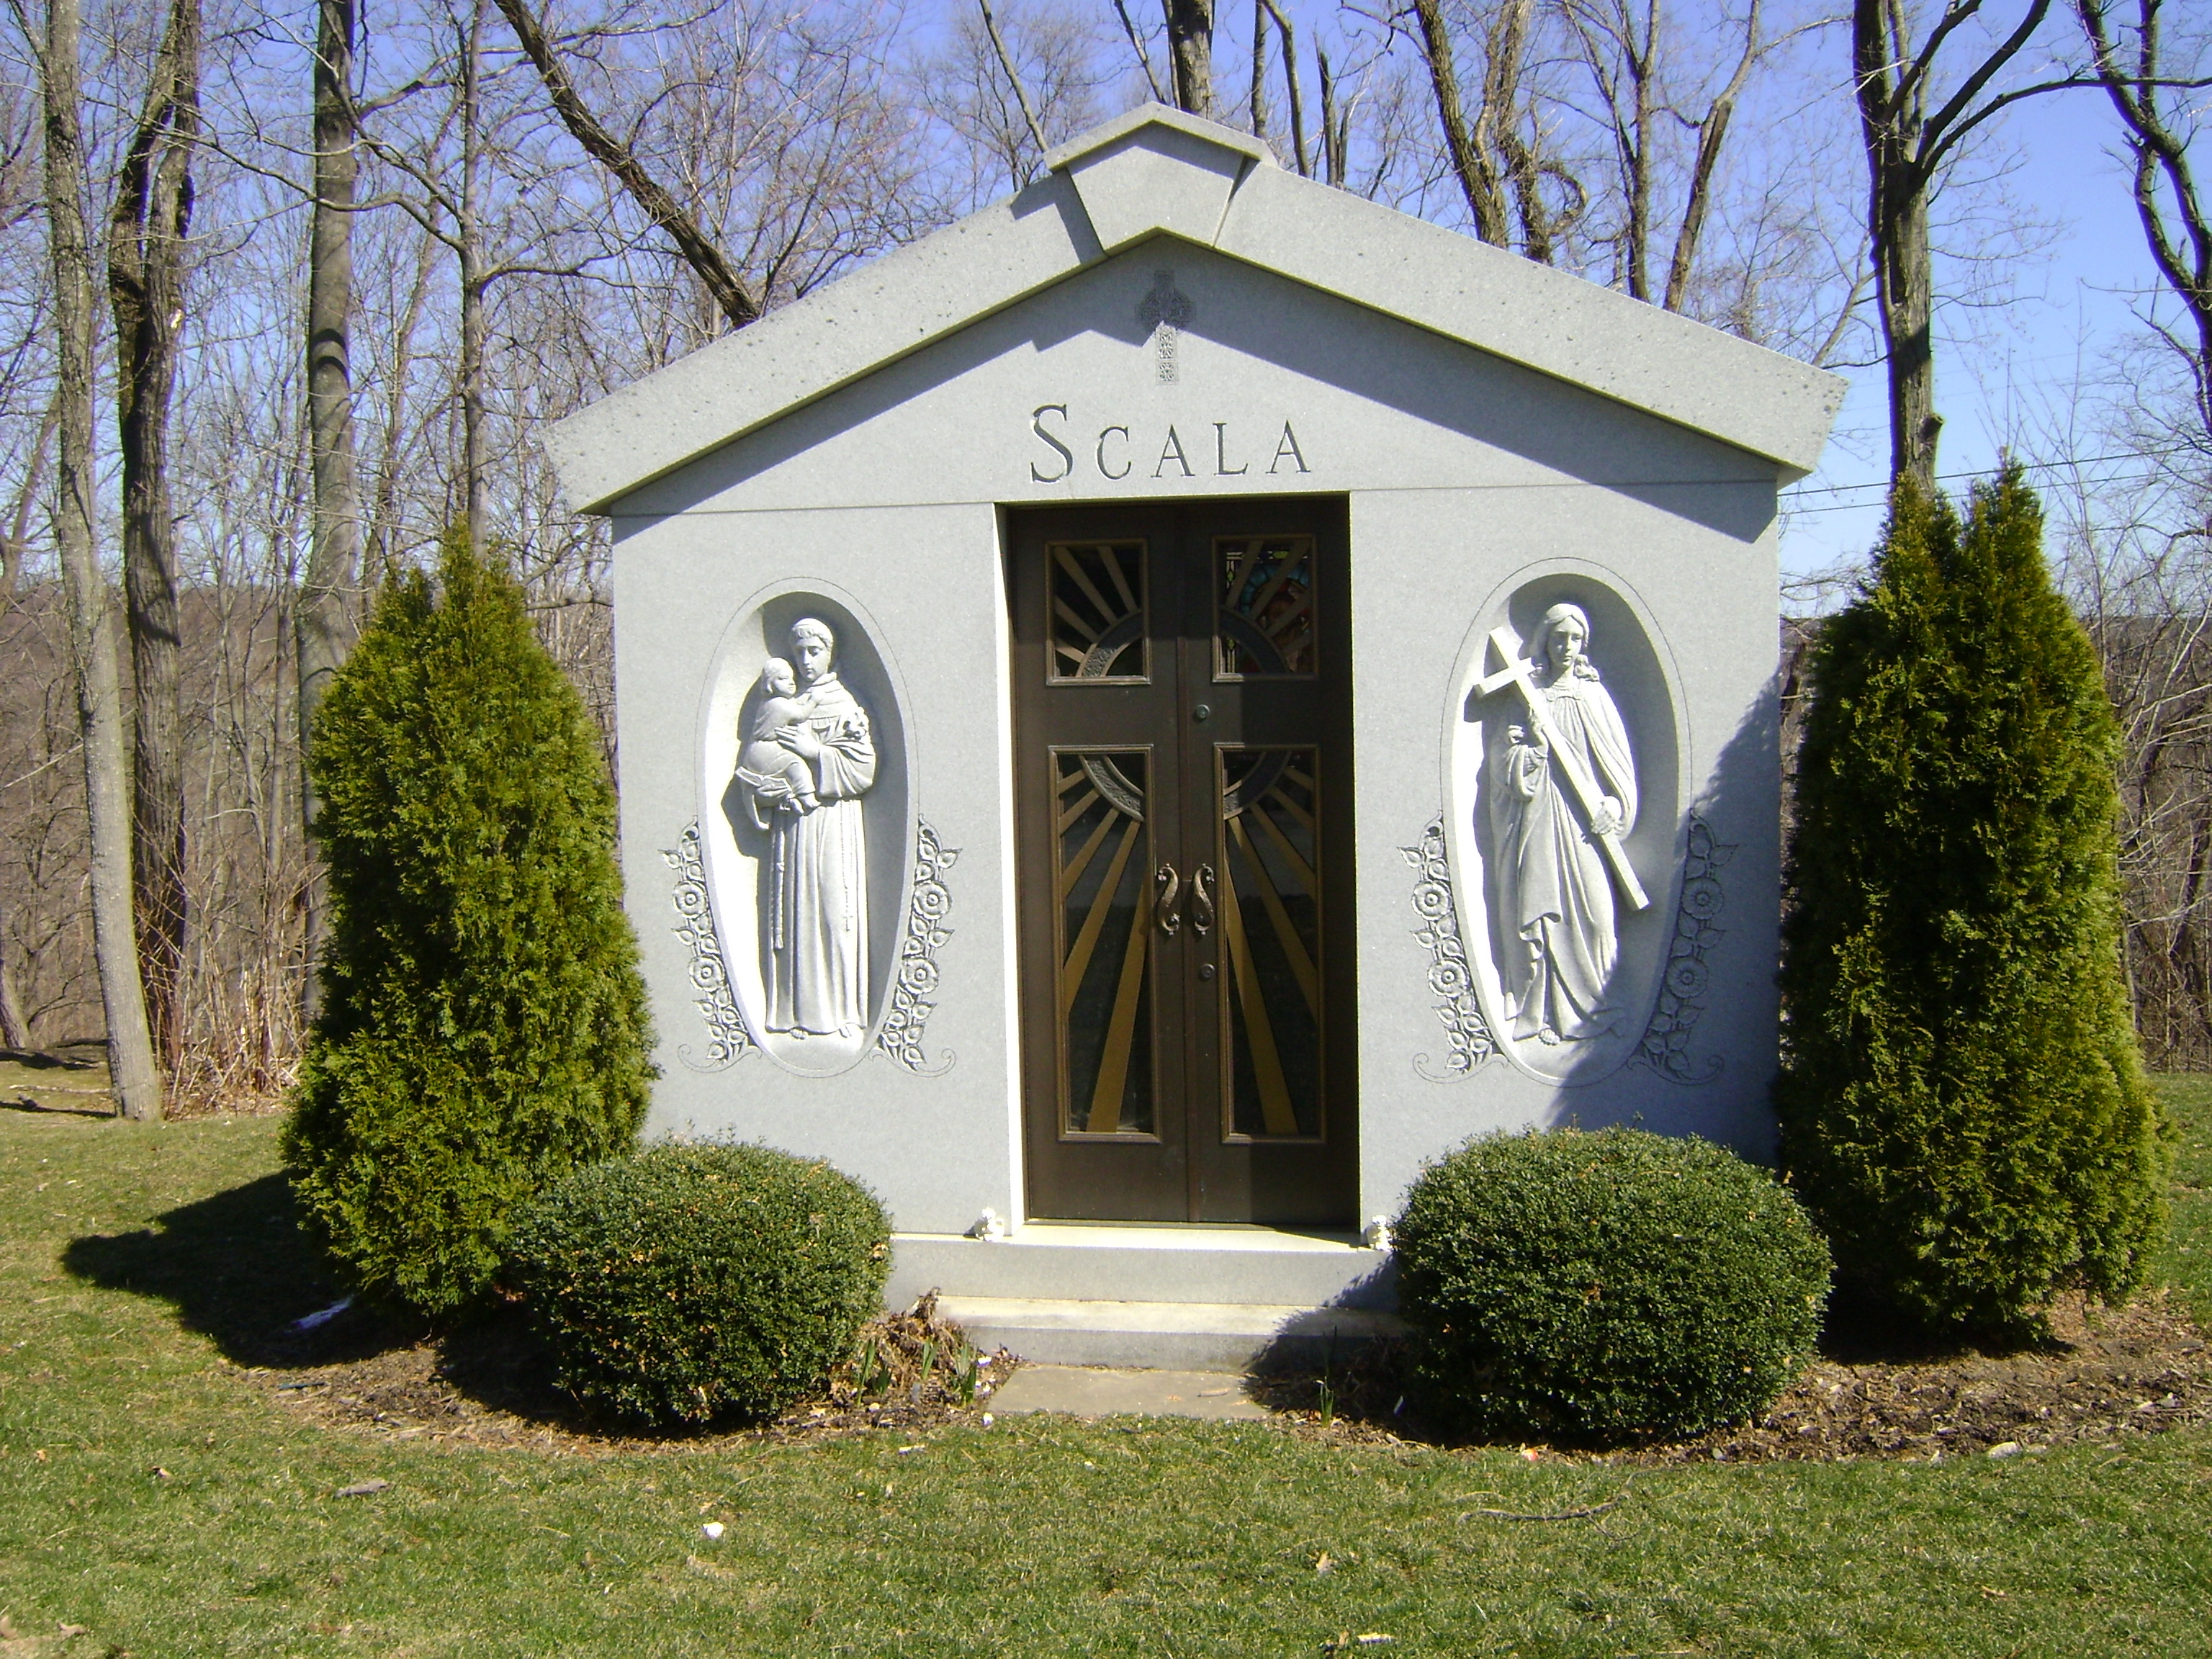 Polchinski Memorials New York - Scala Featured Memorials